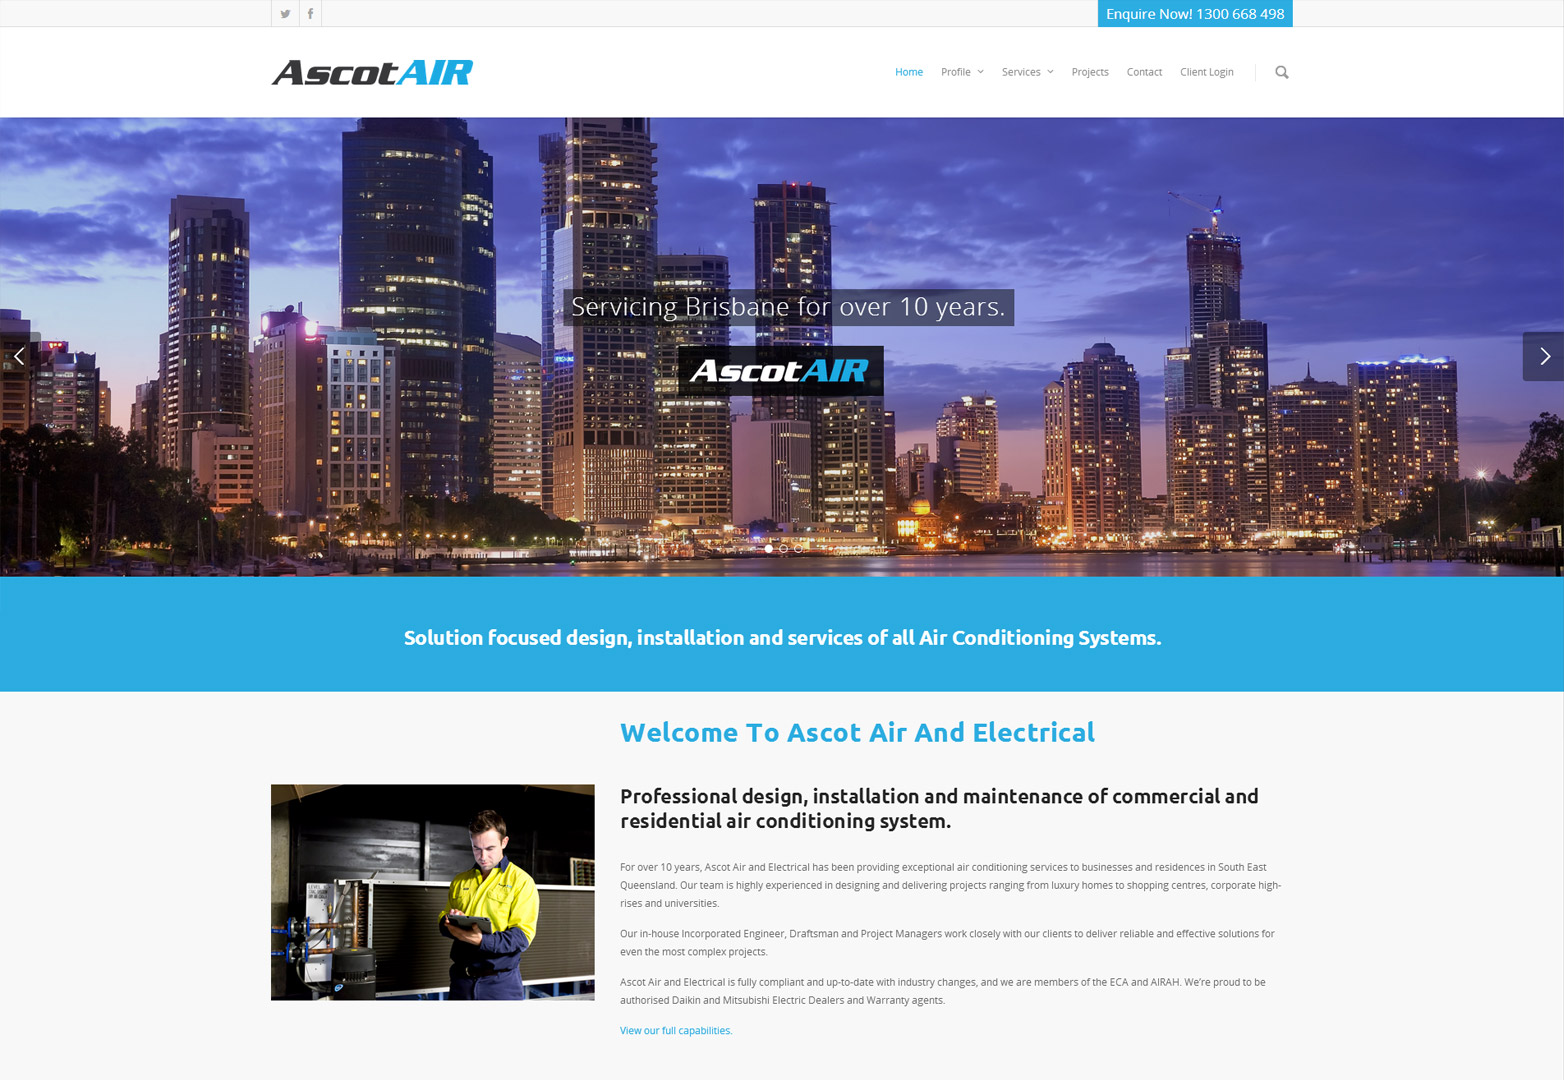 AscotAir homepage design in desktop view